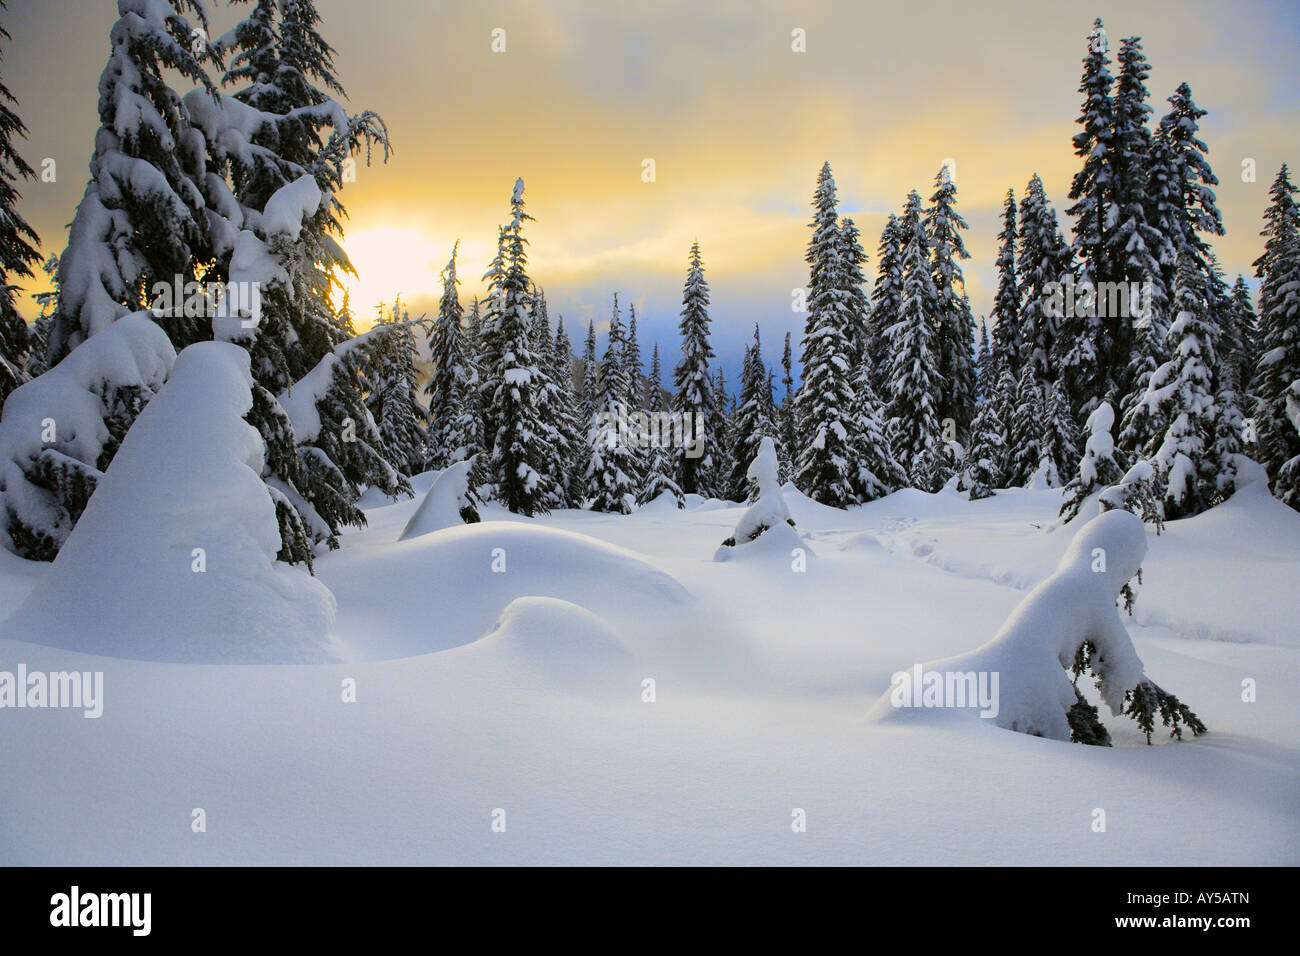 Skyline Lake in Washington's Cascade Mountains snowed in during winter - Stock Image